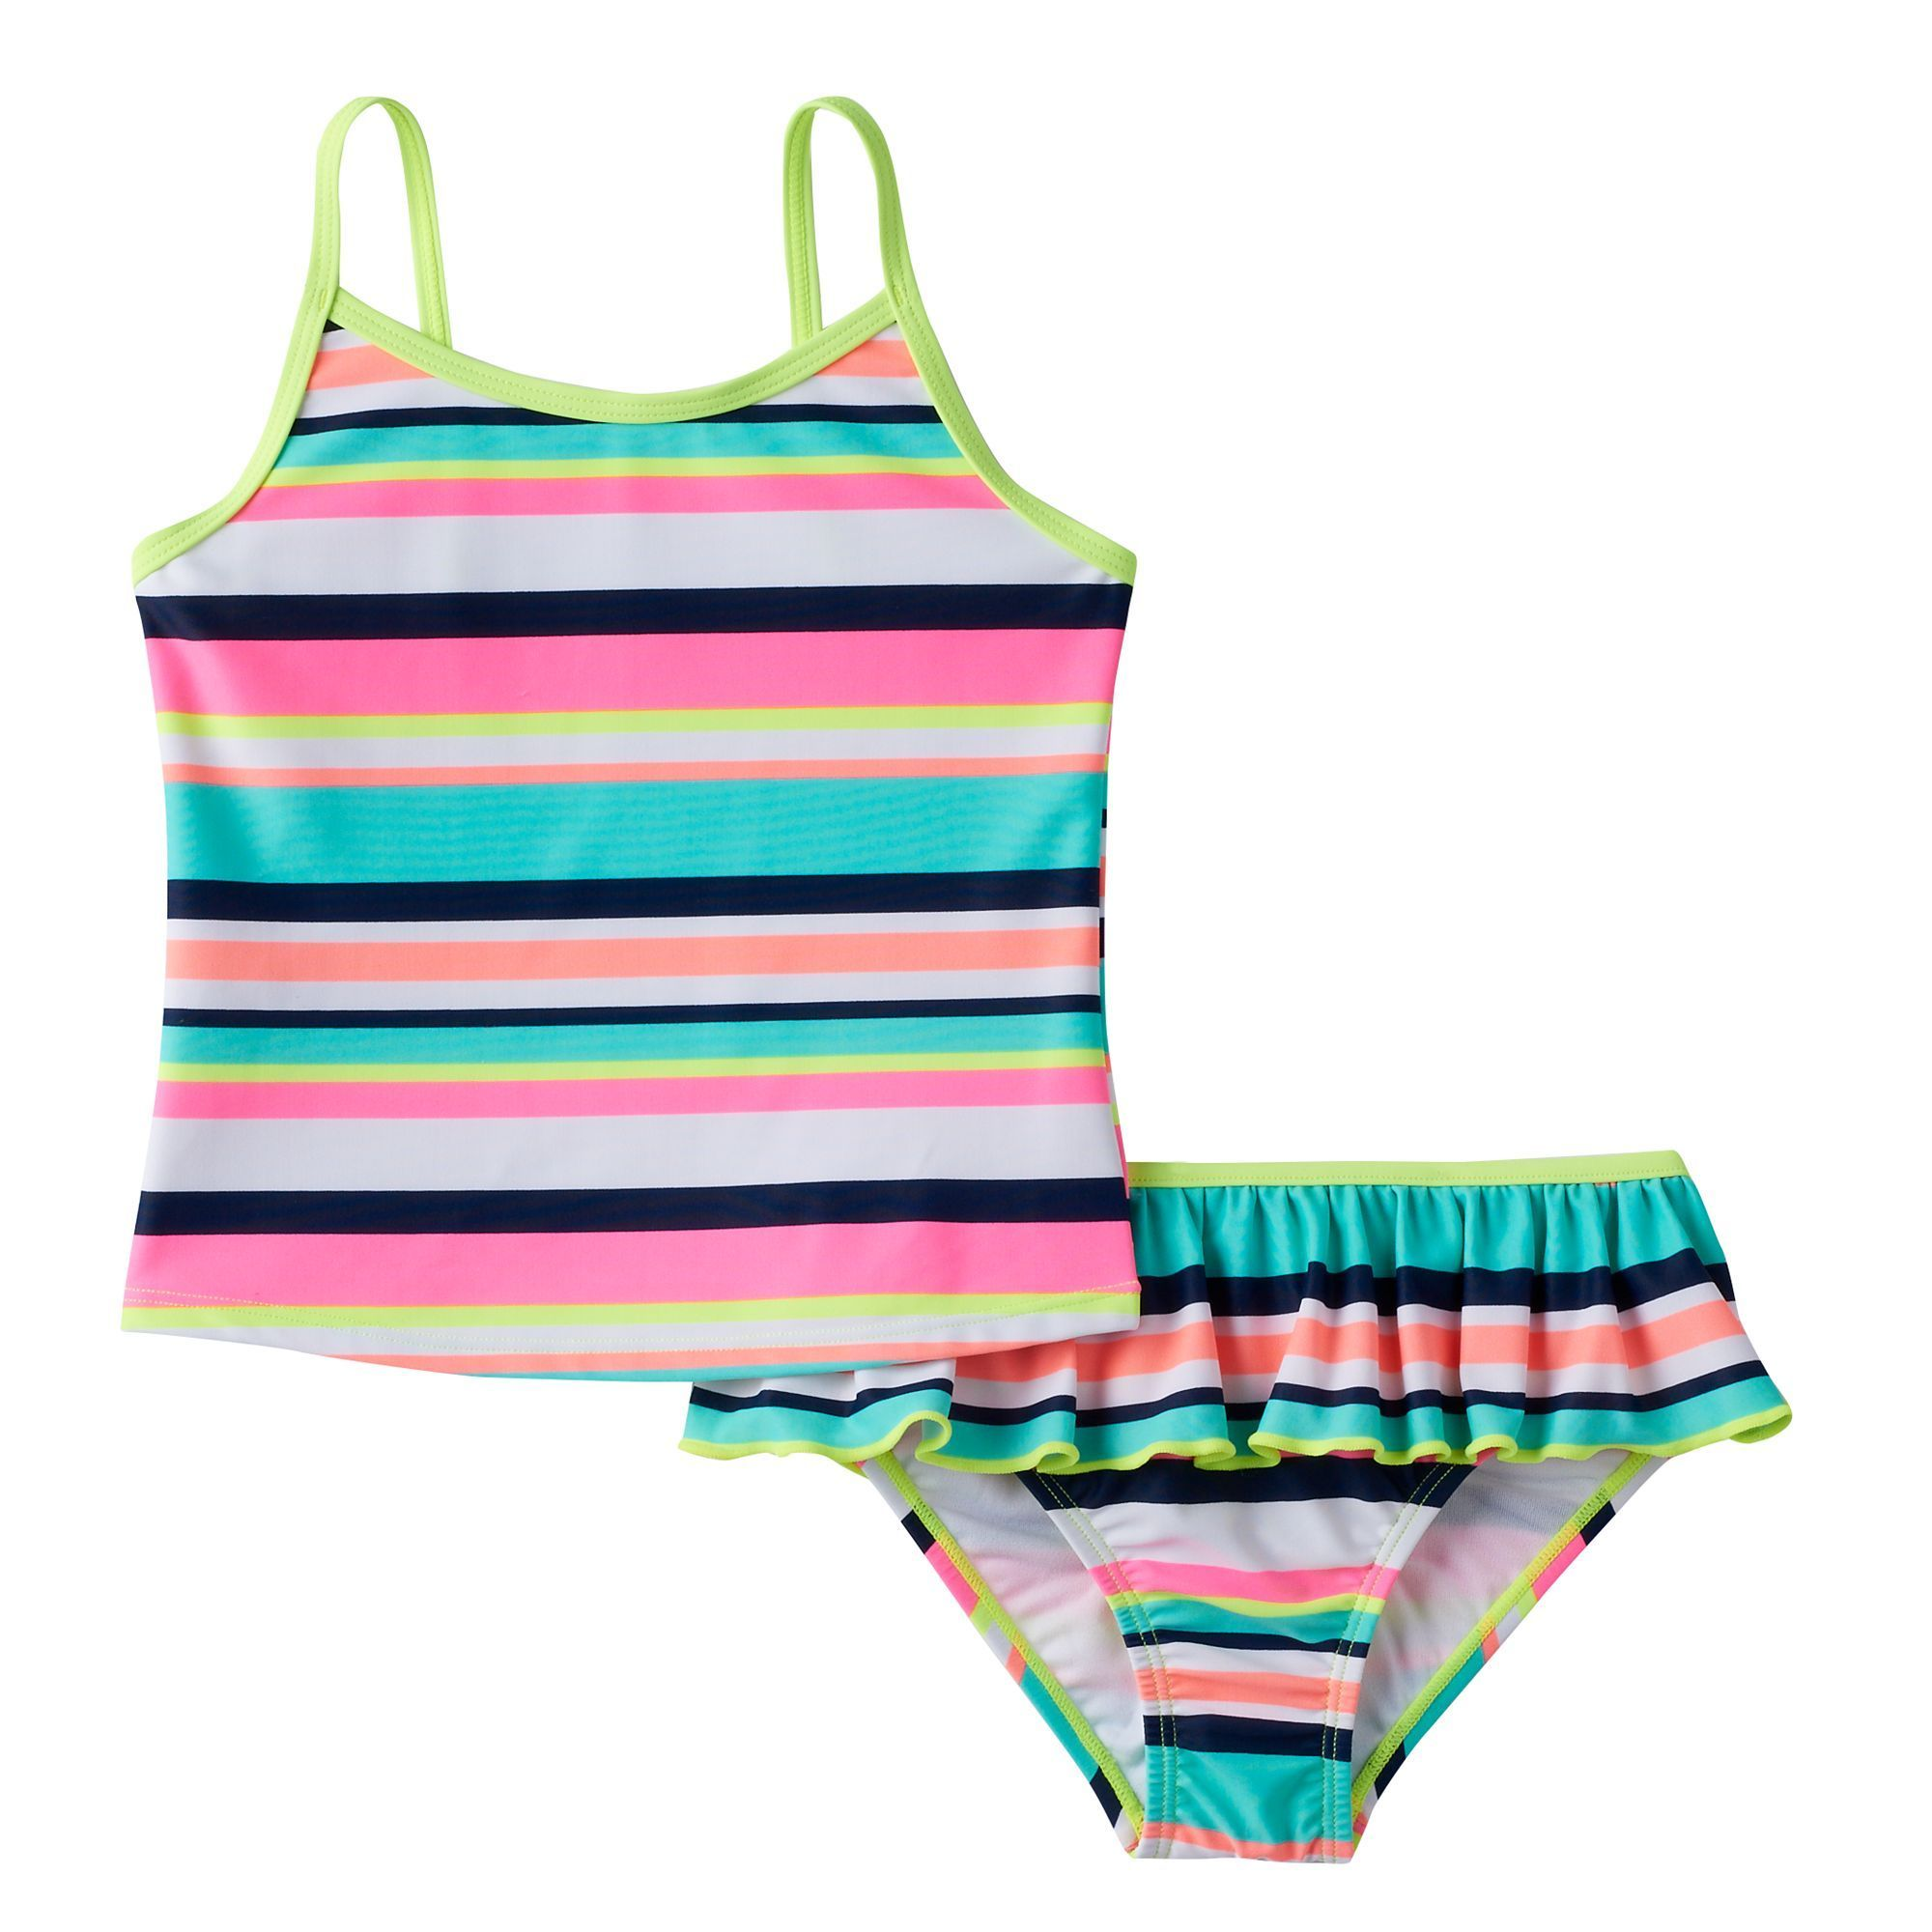 53ae760d63 Baby Girl Carter's Striped Tankini Top & Ruffled Bottoms Swimsuit Set,  Size: 12 Months, Brt Green